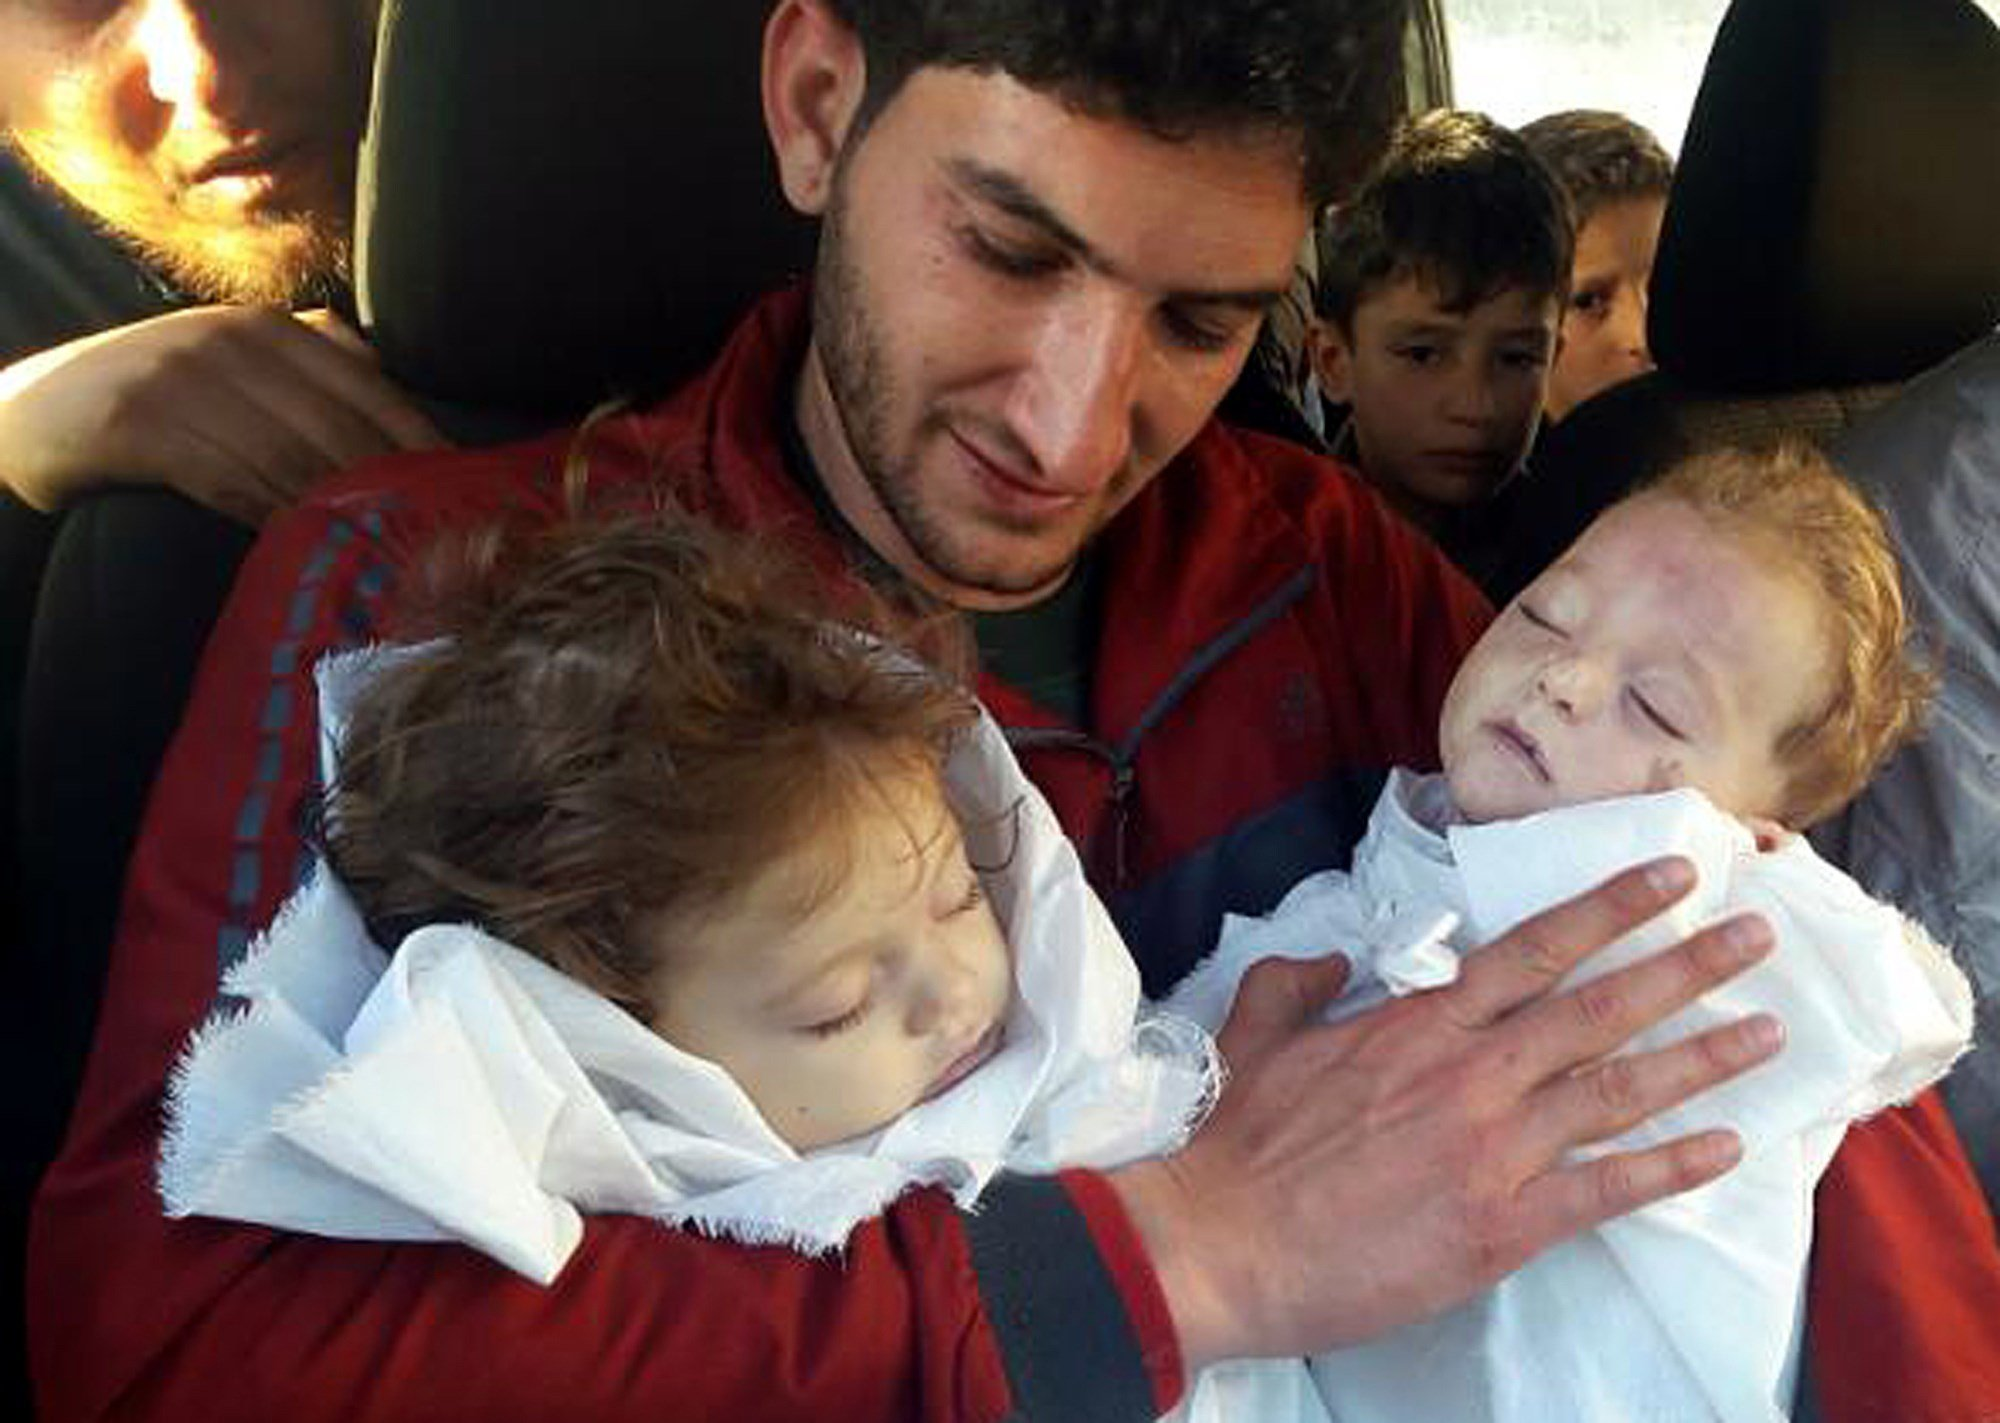 In this picture taken on Tuesday April 4, 2017, SAbdul-Hamid Alyousef, 29, holds his twin babies who were killed during a suspected chemical weapons attack, in Khan Sheikhoun in the northern province of Idlib, Syria.